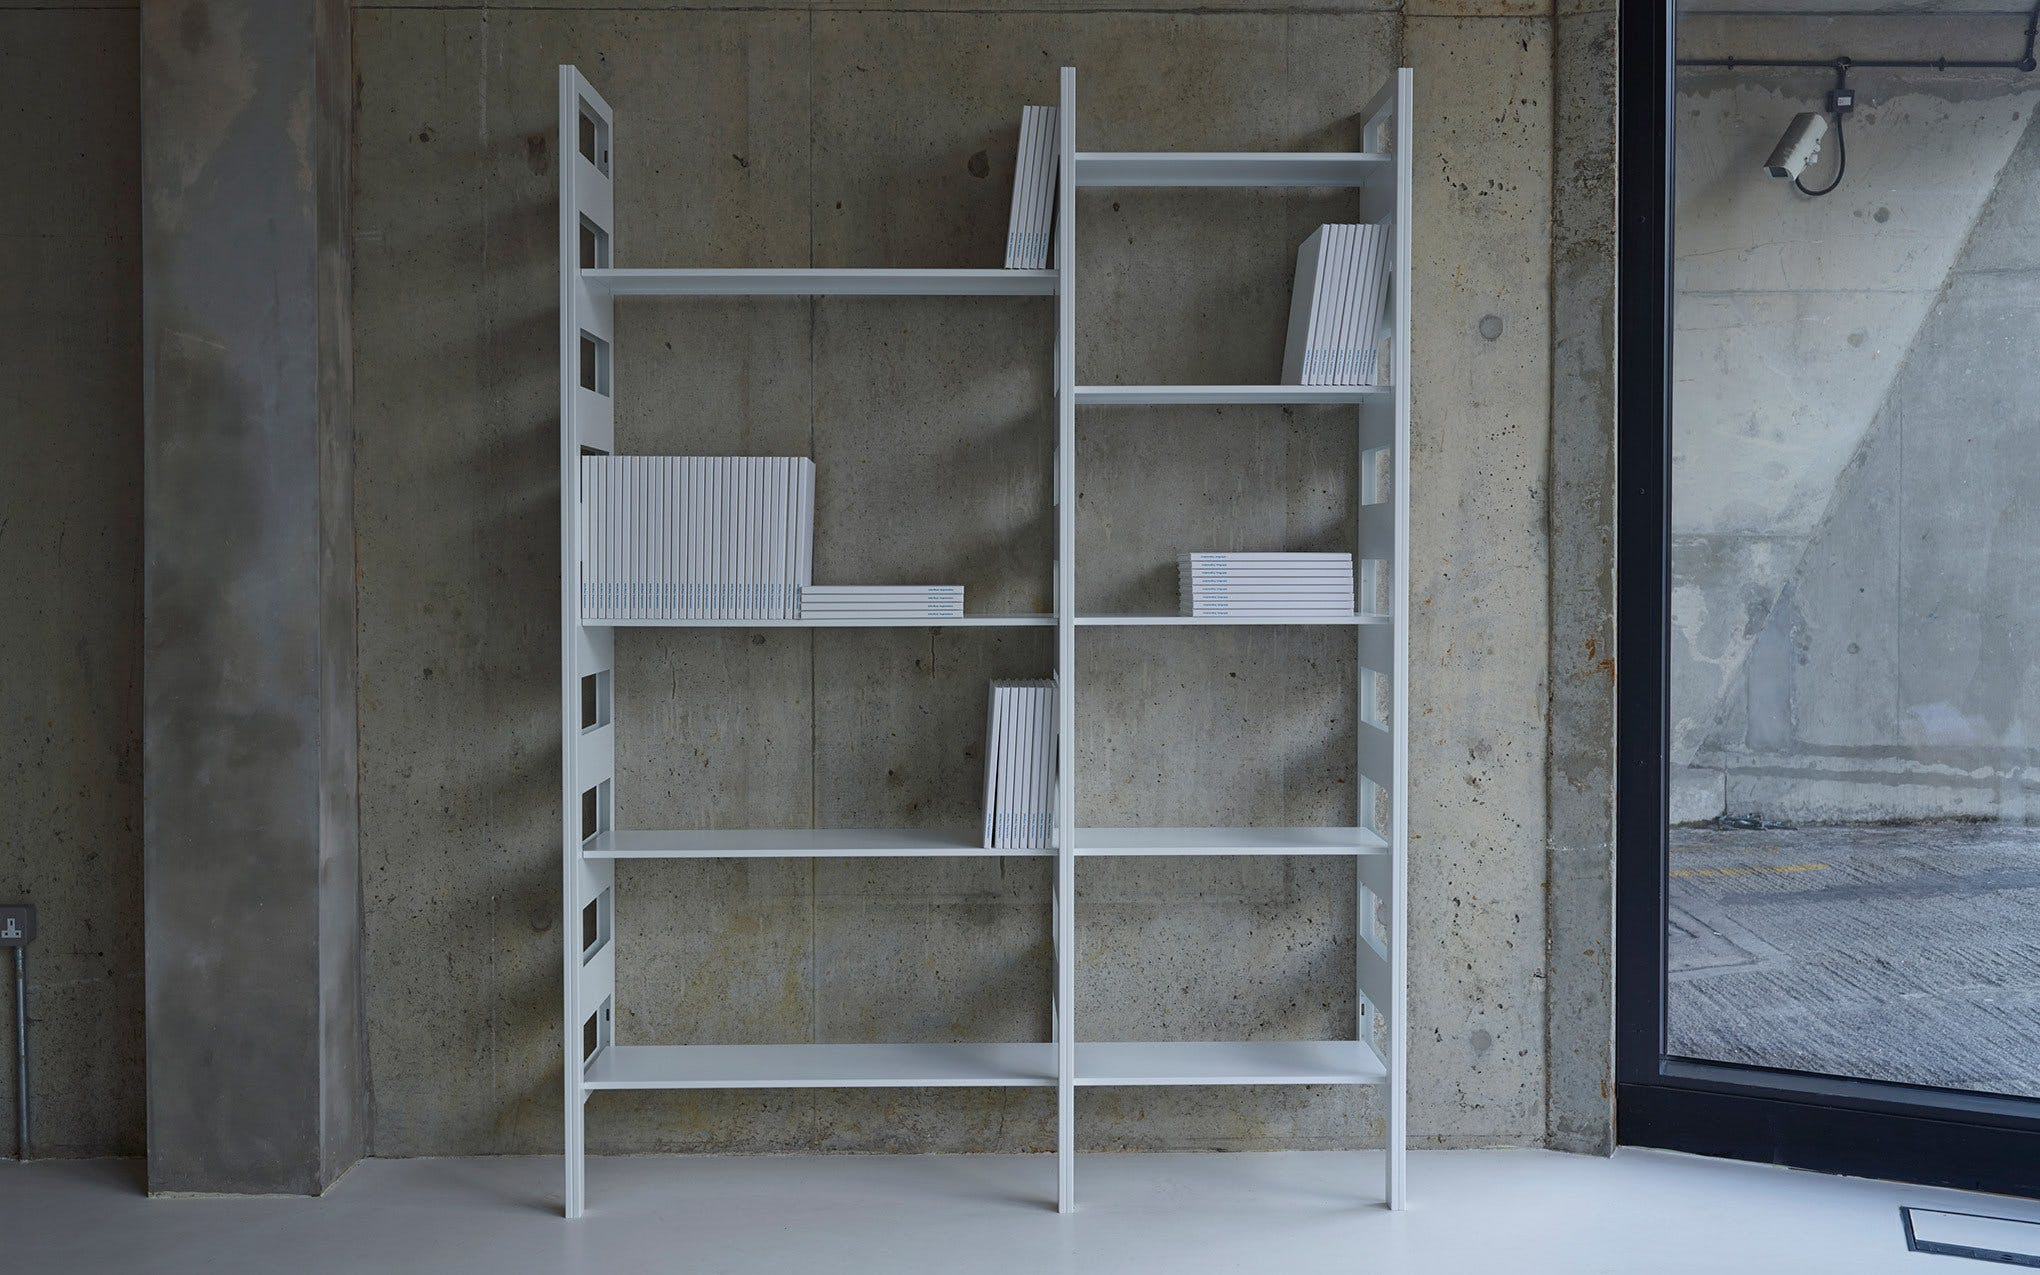 Parallel Shelves 4